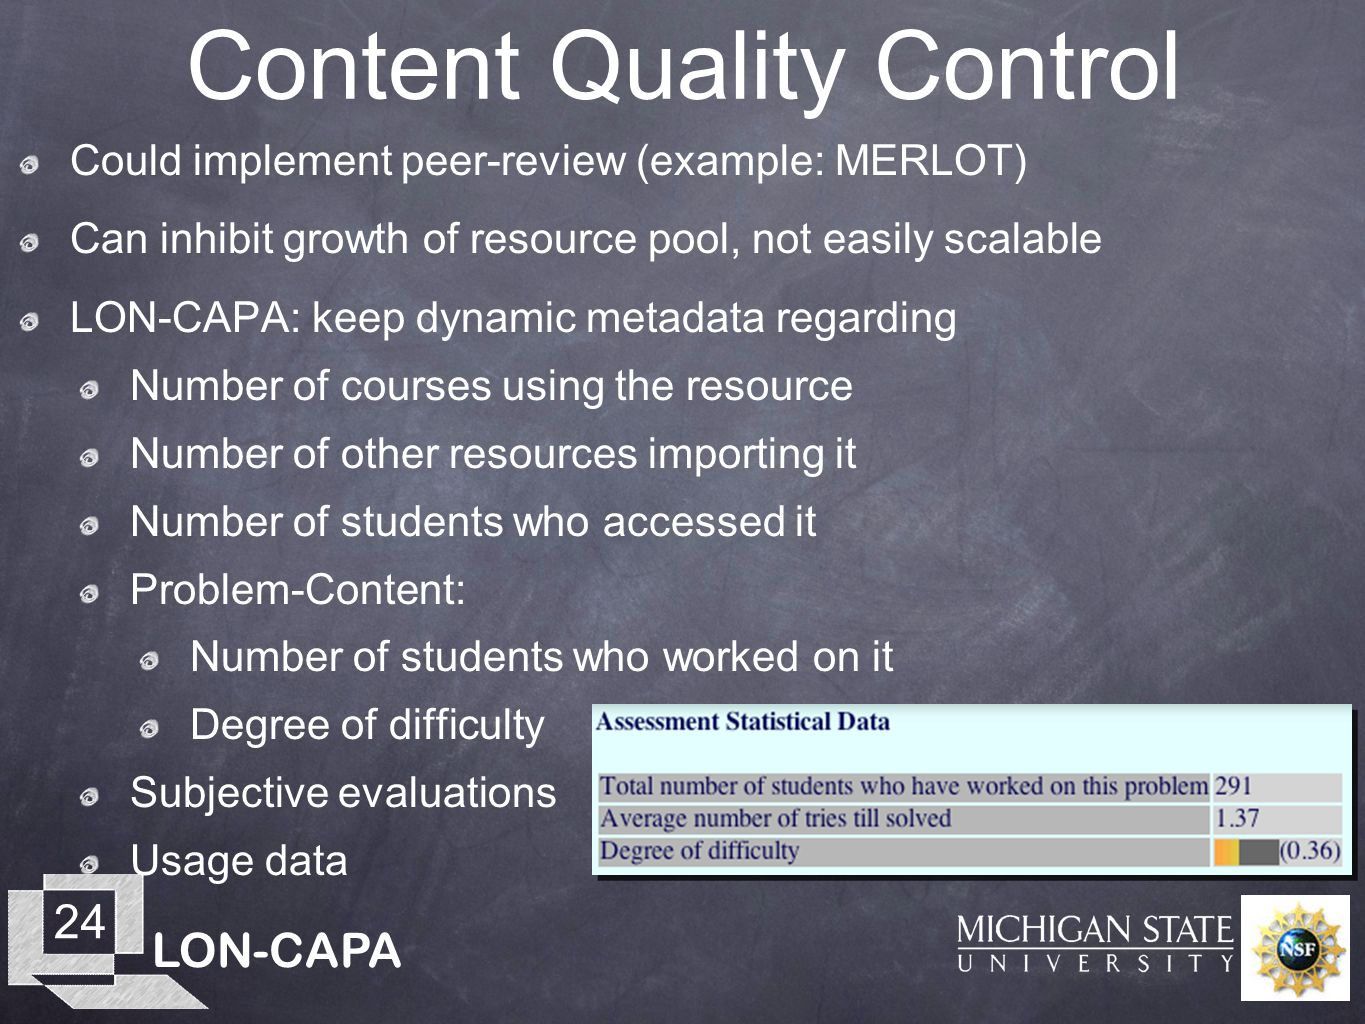 LON-CAPA 24 Content Quality Control Could implement peer-review (example: MERLOT) Can inhibit growth of resource pool, not easily scalable LON-CAPA: keep dynamic metadata regarding Number of courses using the resource Number of other resources importing it Number of students who accessed it Problem-Content: Number of students who worked on it Degree of difficulty Subjective evaluations Usage data